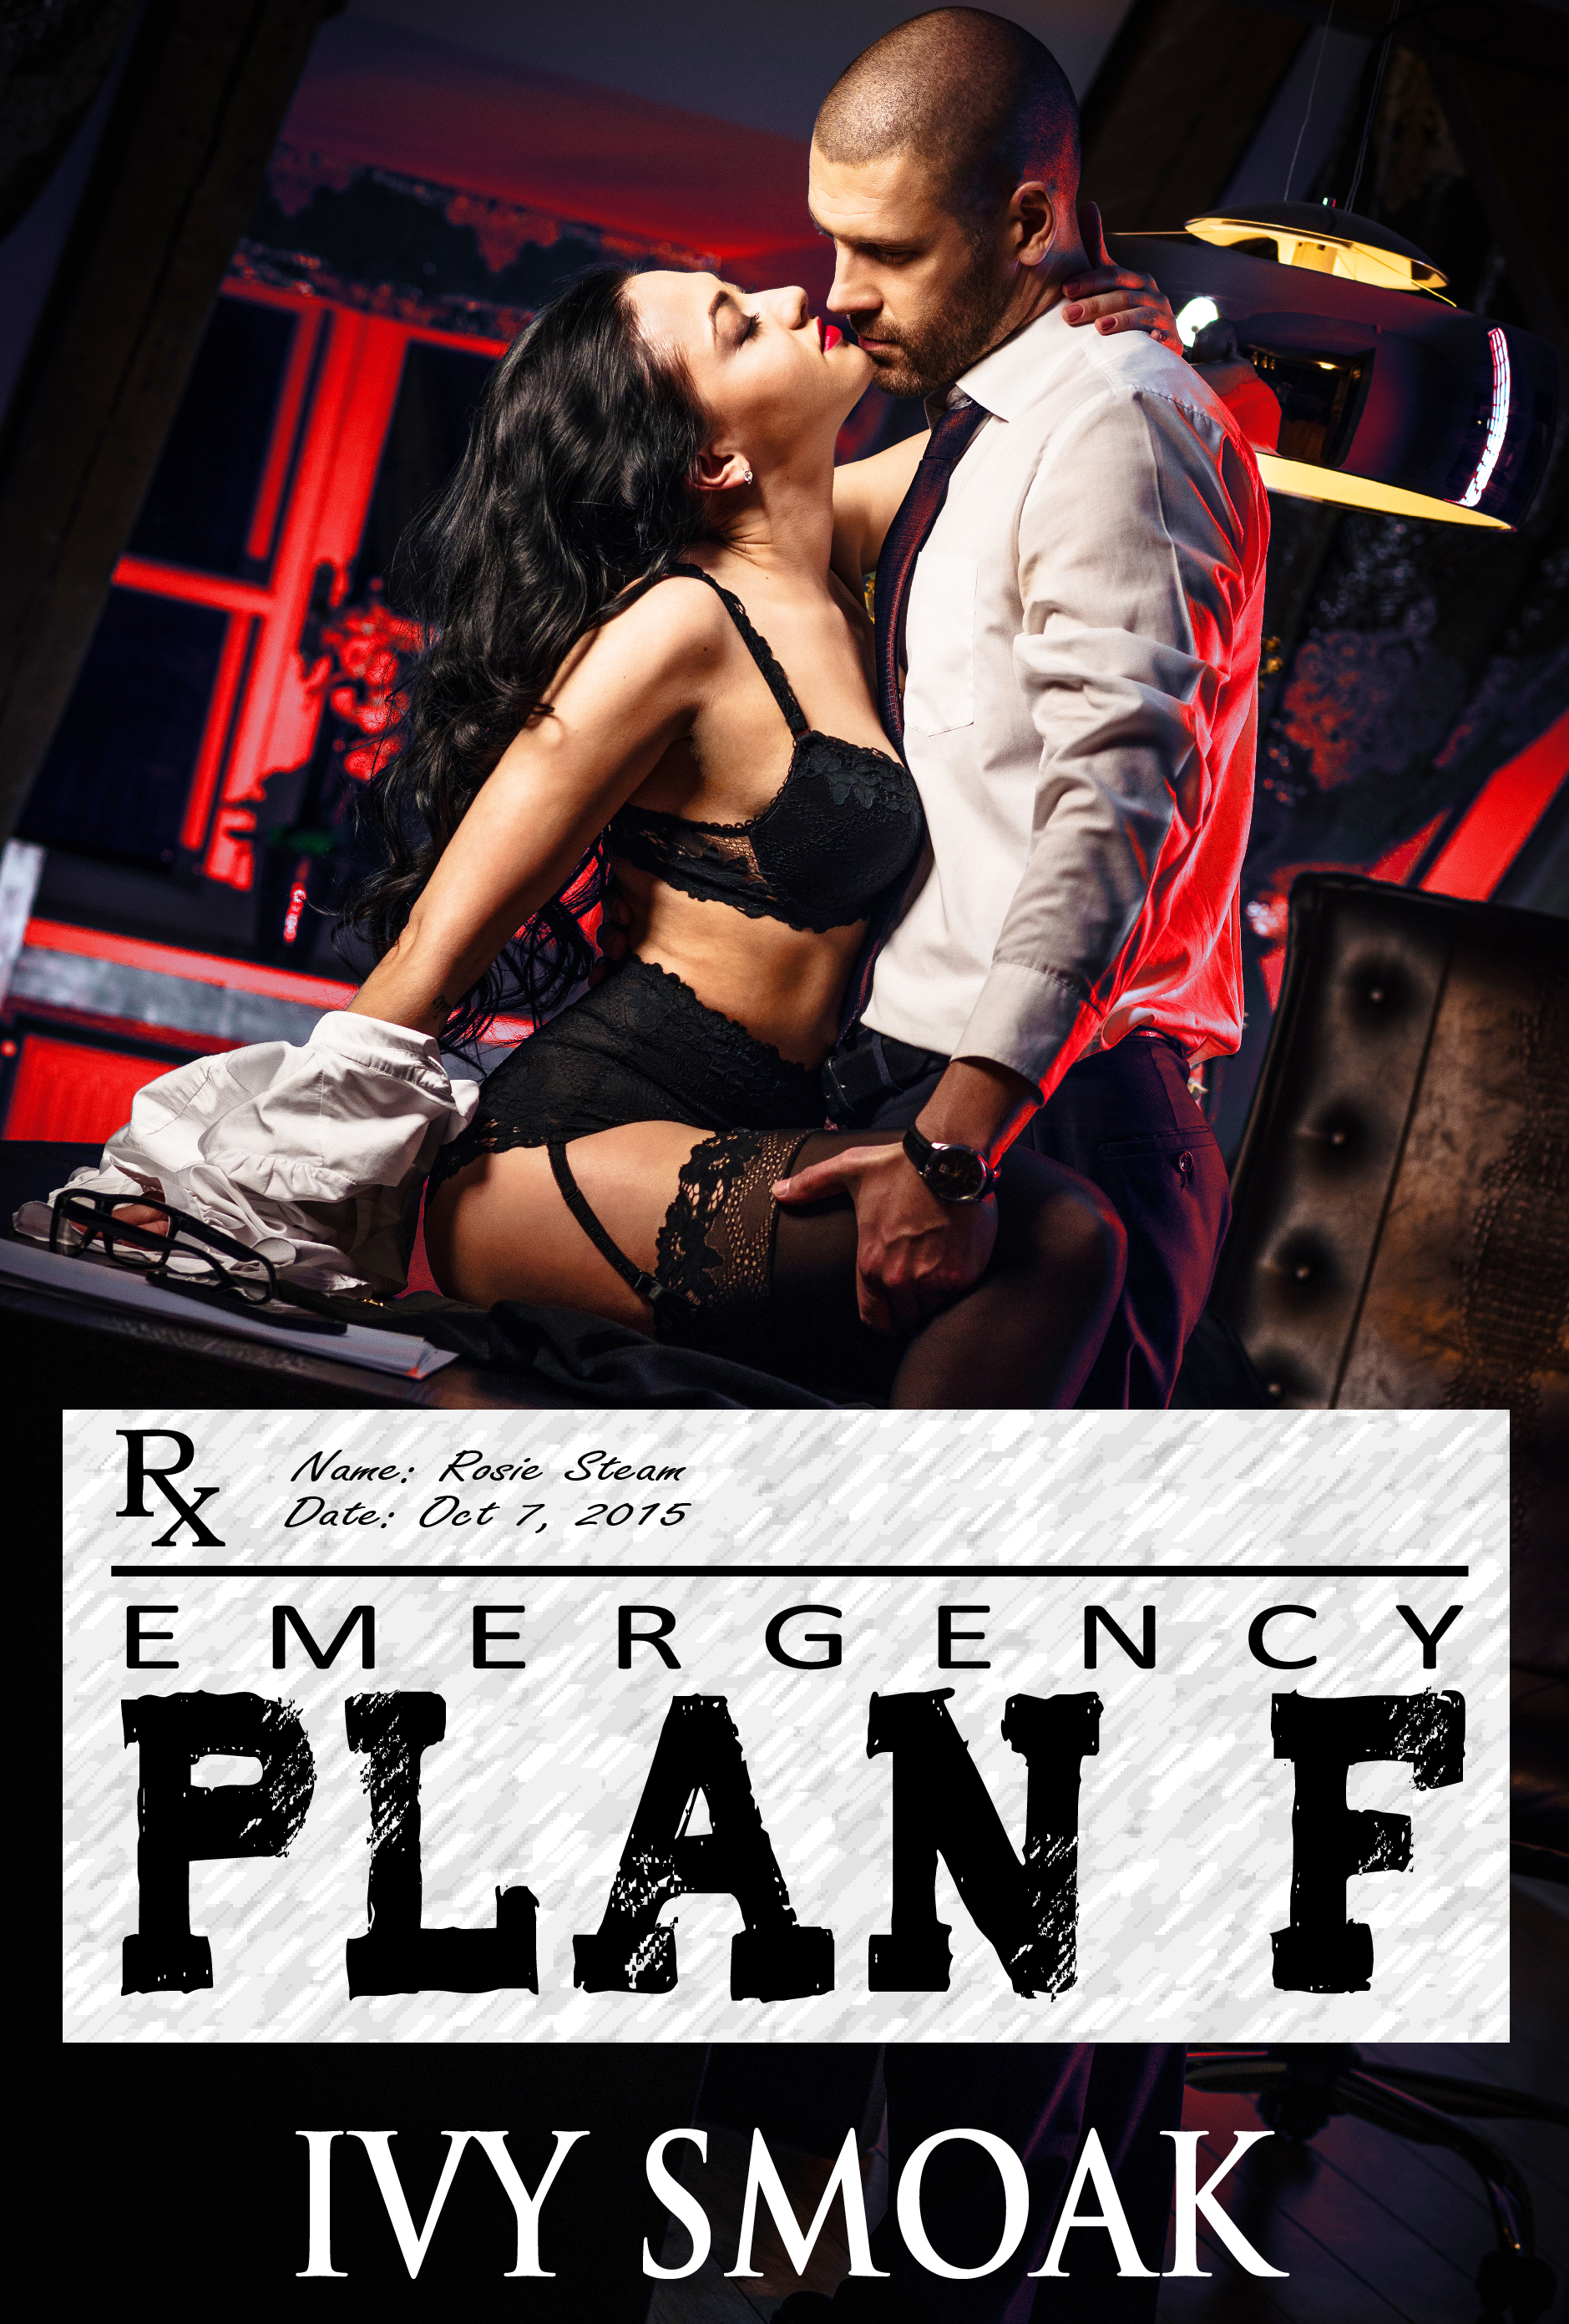 Emergency Plan F Cover.jpg